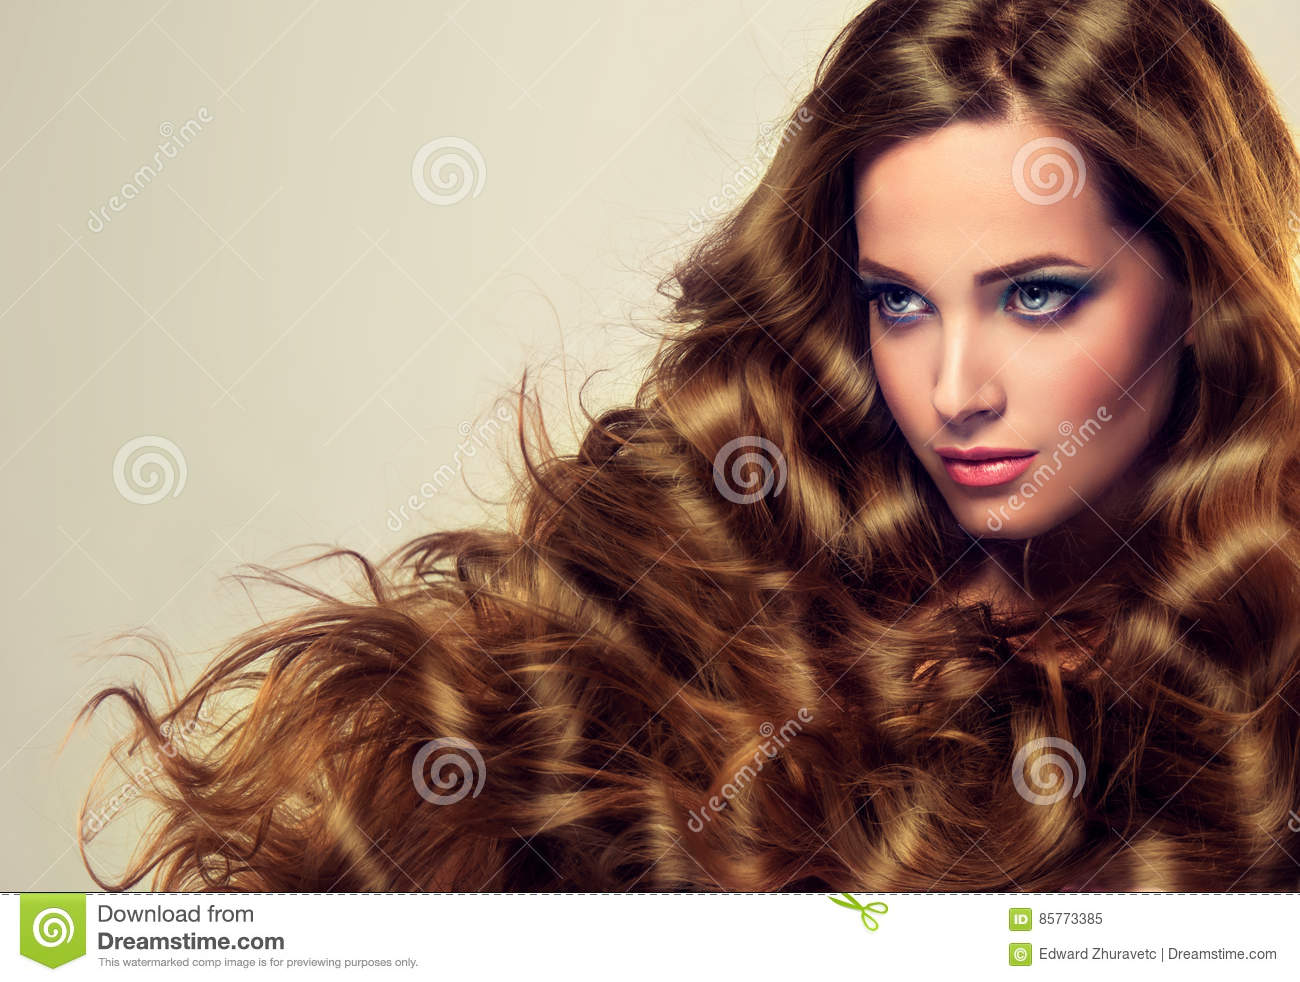 Well cared, dense and strong womans hair.